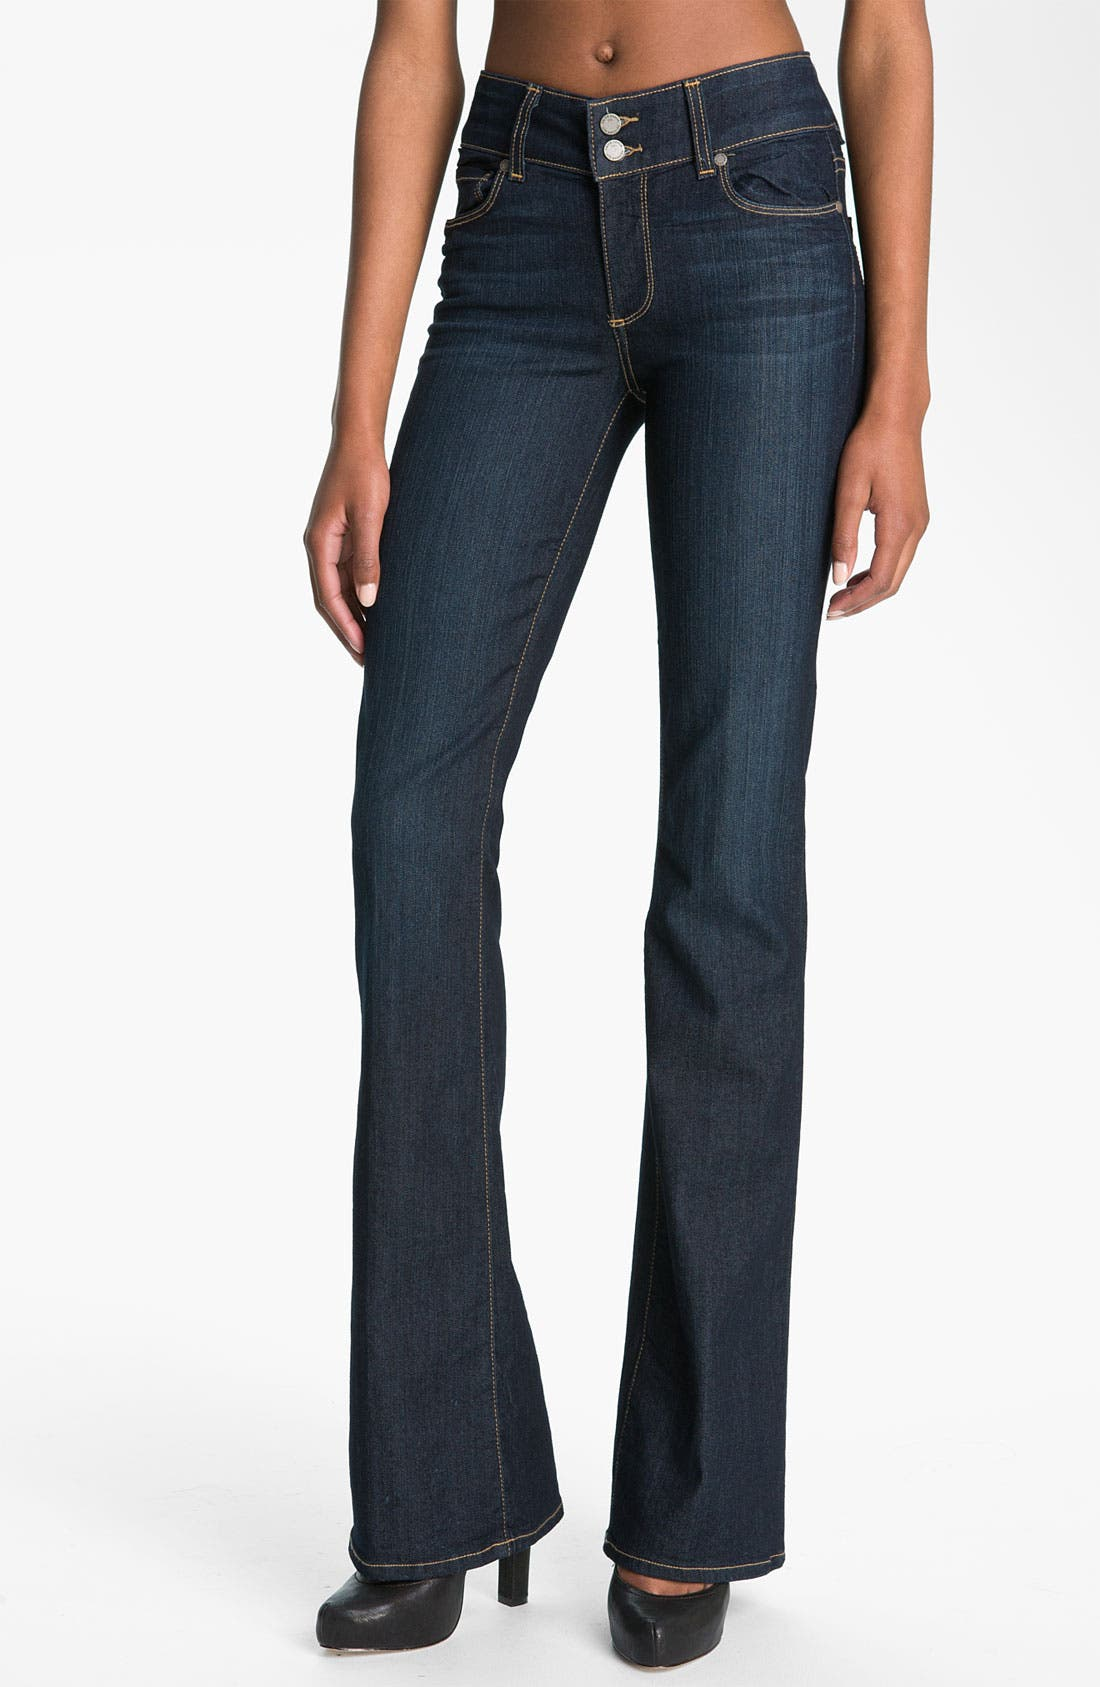 Alternate Image 1 Selected - PAIGE 'Hidden Hills' High Rise Bootcut Stretch Jeans (Stream)